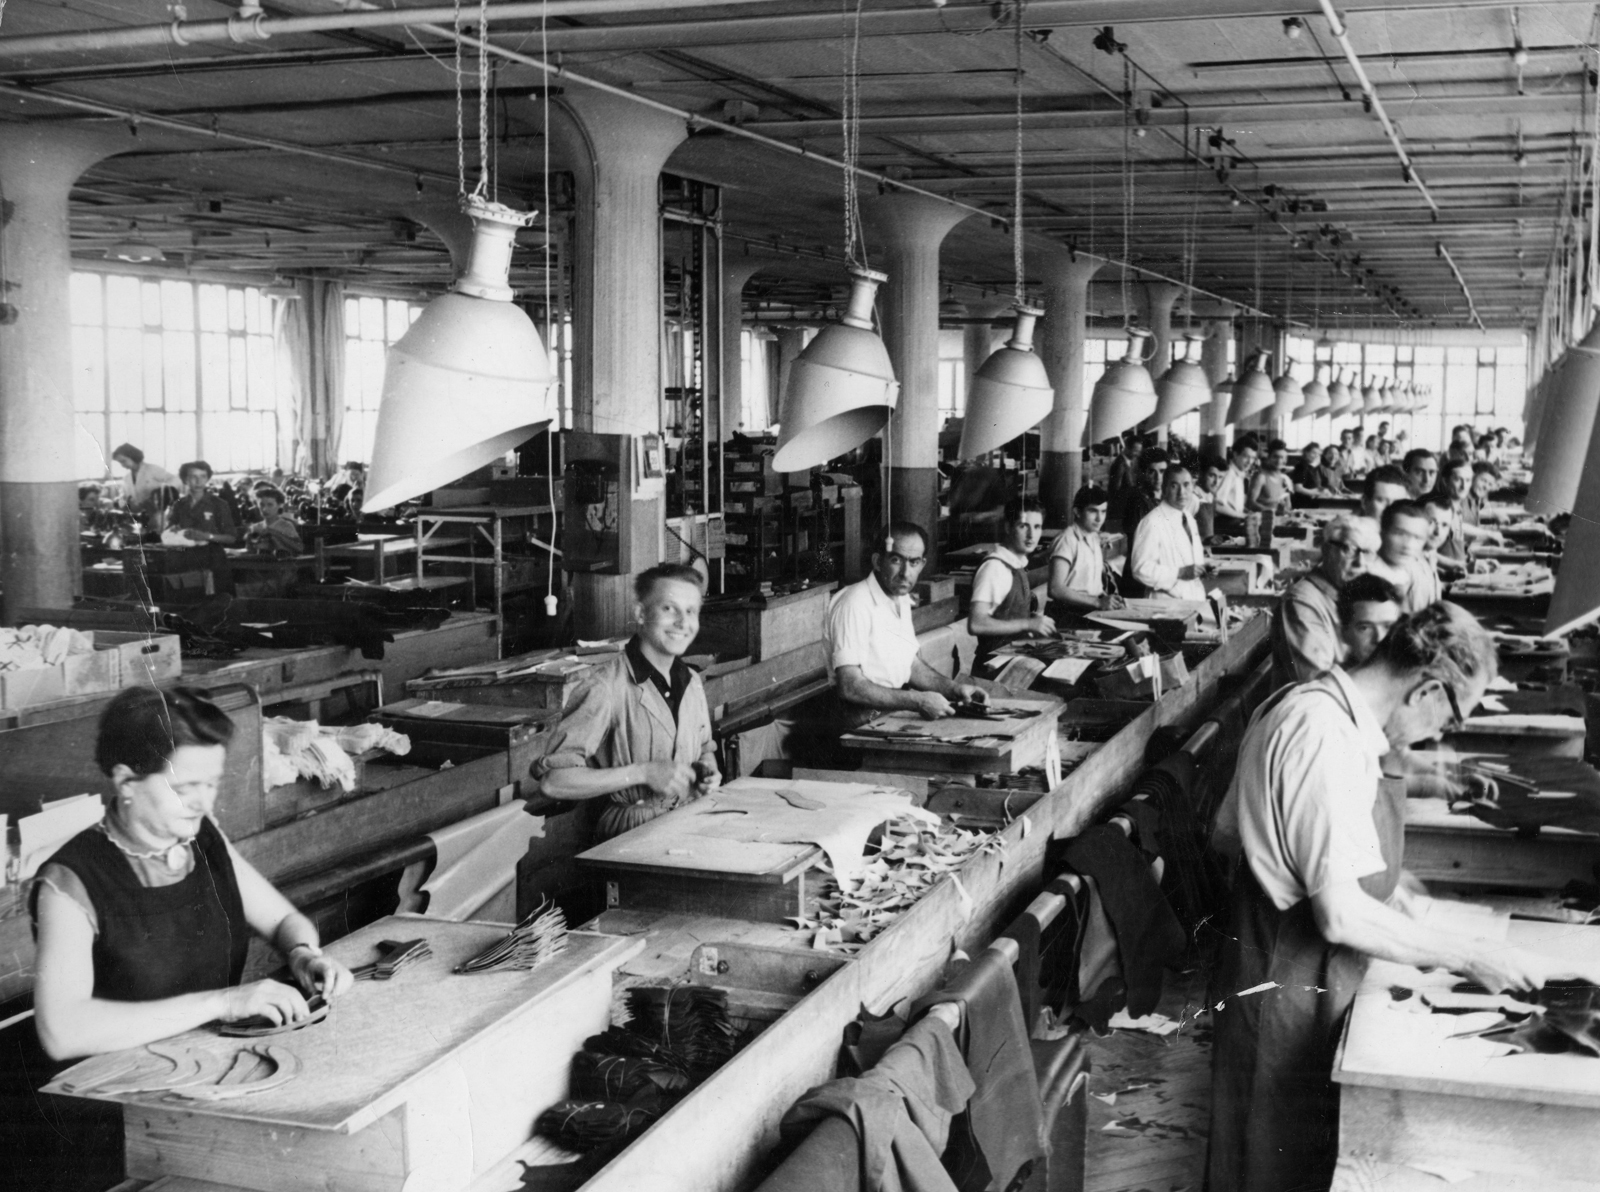 Ouvriers dans l'usine Bally. Photographie. Collection Christophe Coupaud.